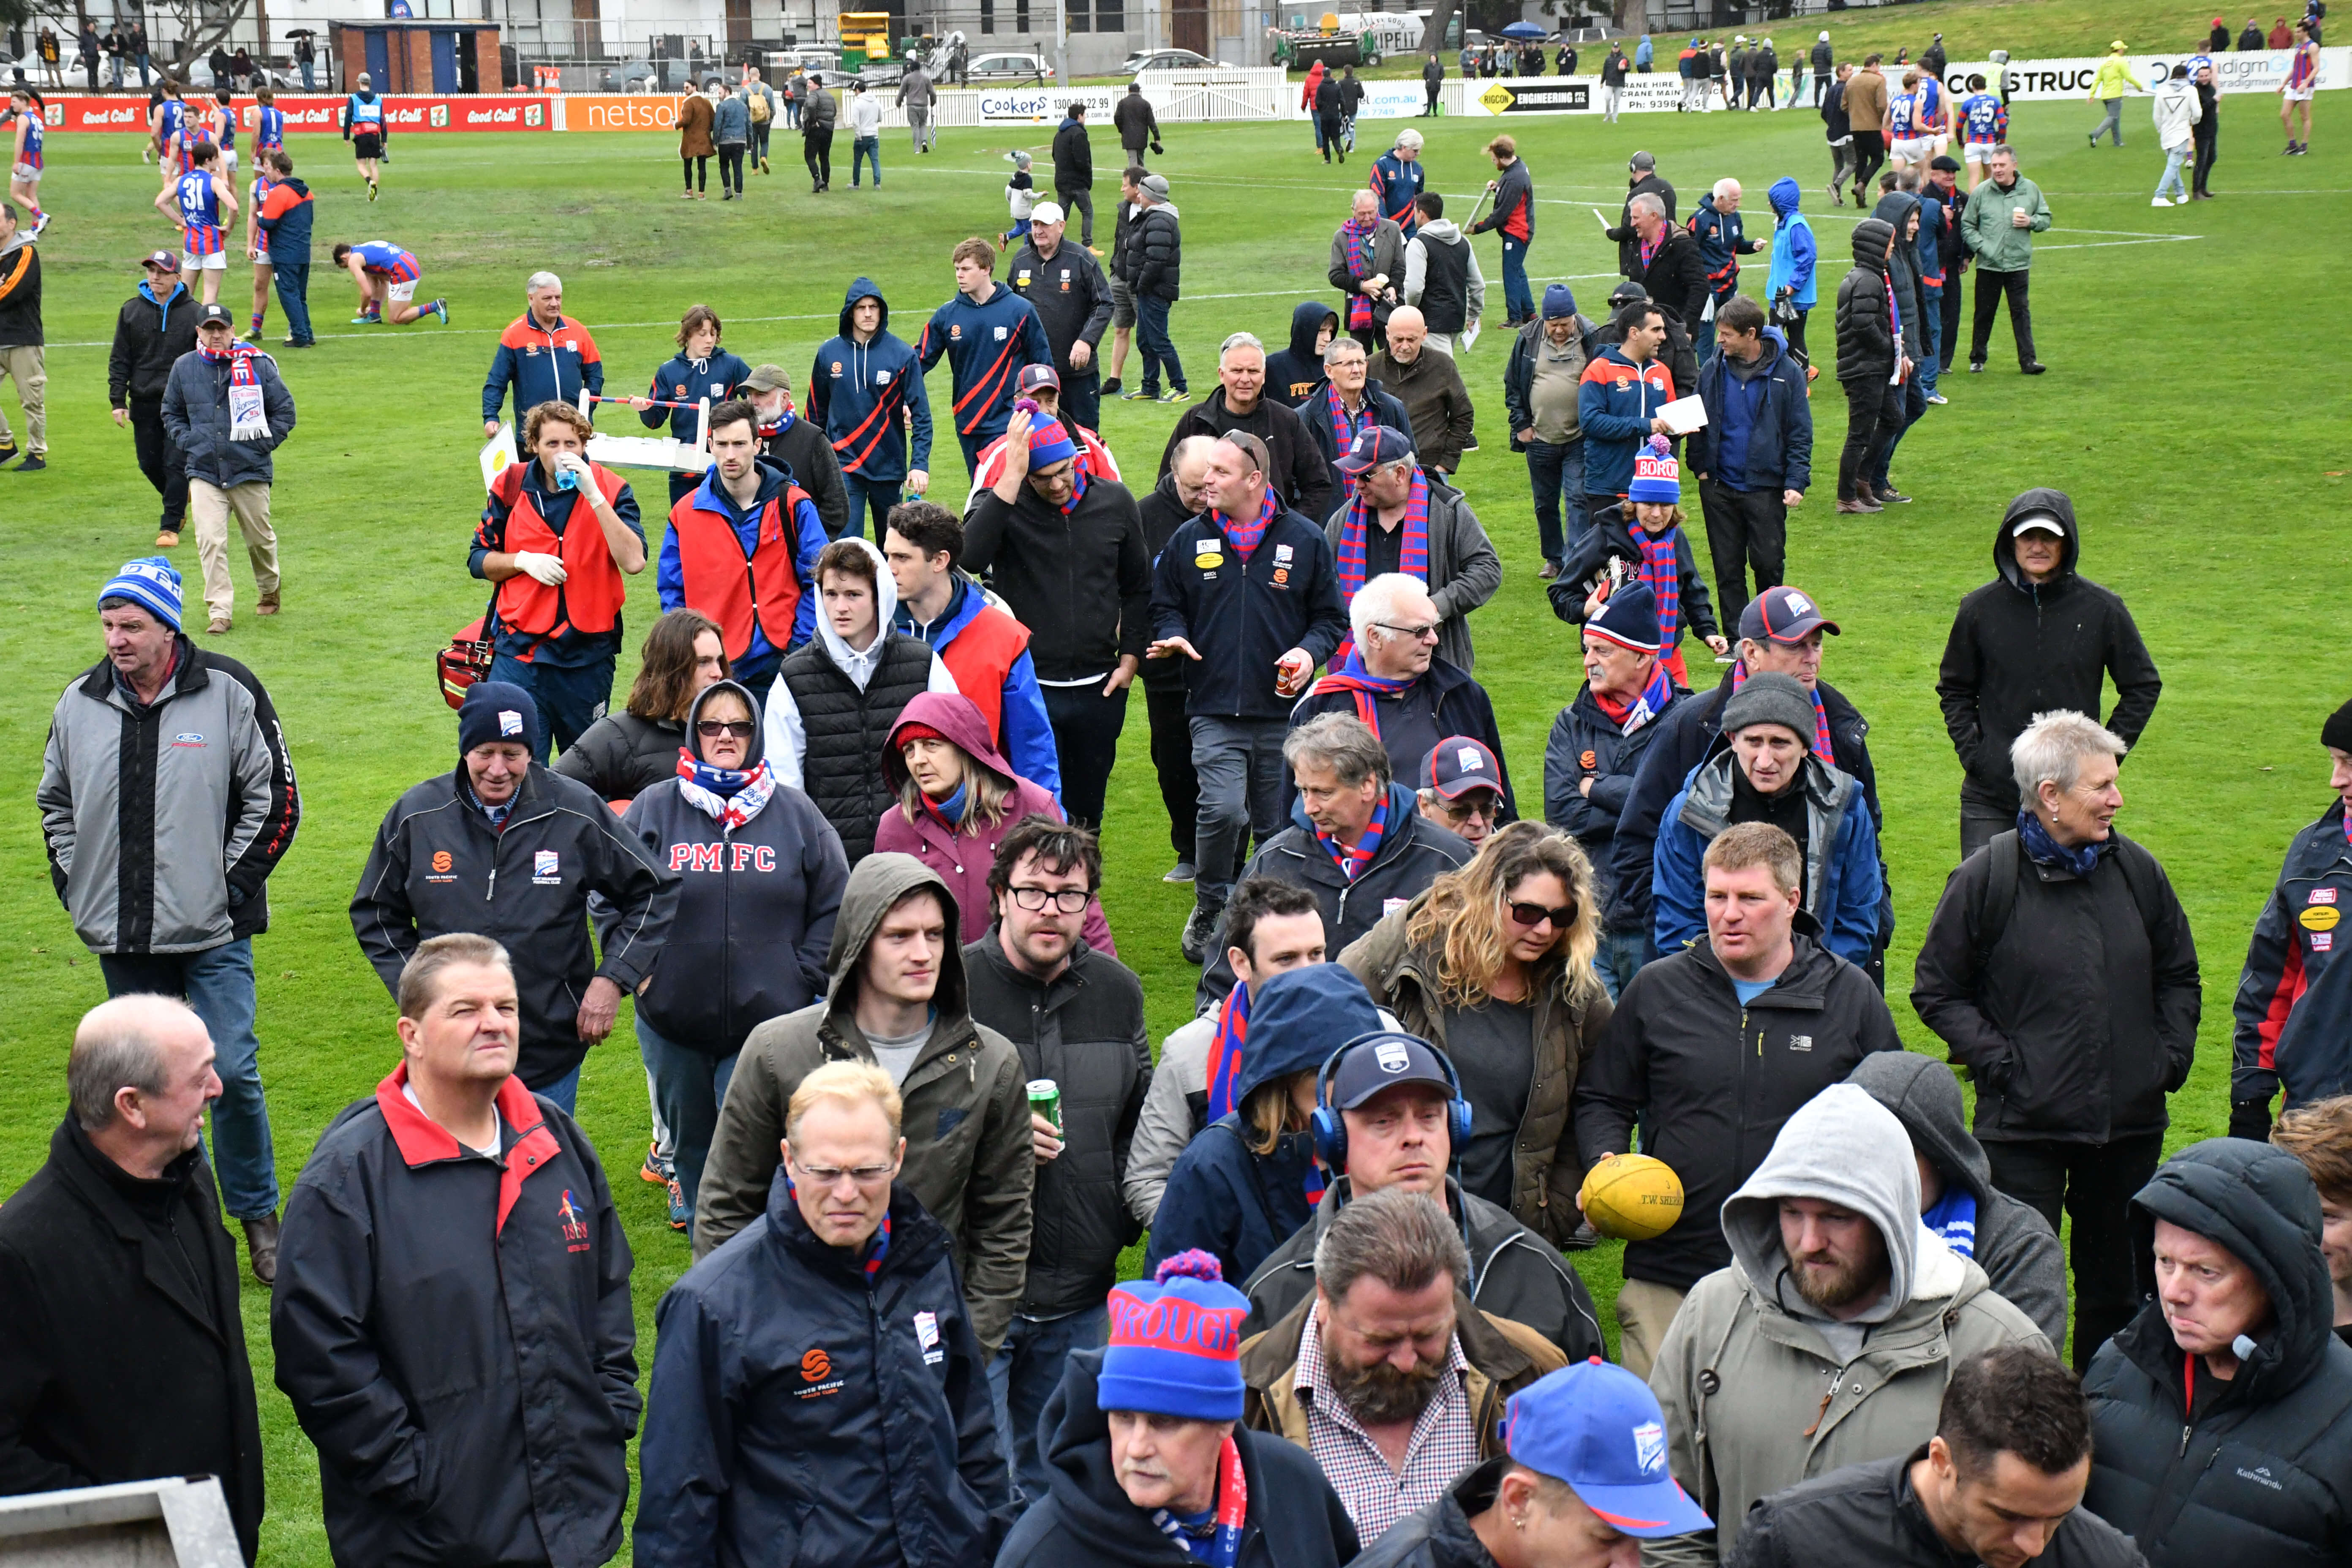 Port Melbourne fans head off the ground after the quarter-time huddle during the elimination final against rivals Box Hill Hawks. Port Melbourne trails by 10 points at Stannard's Stadium